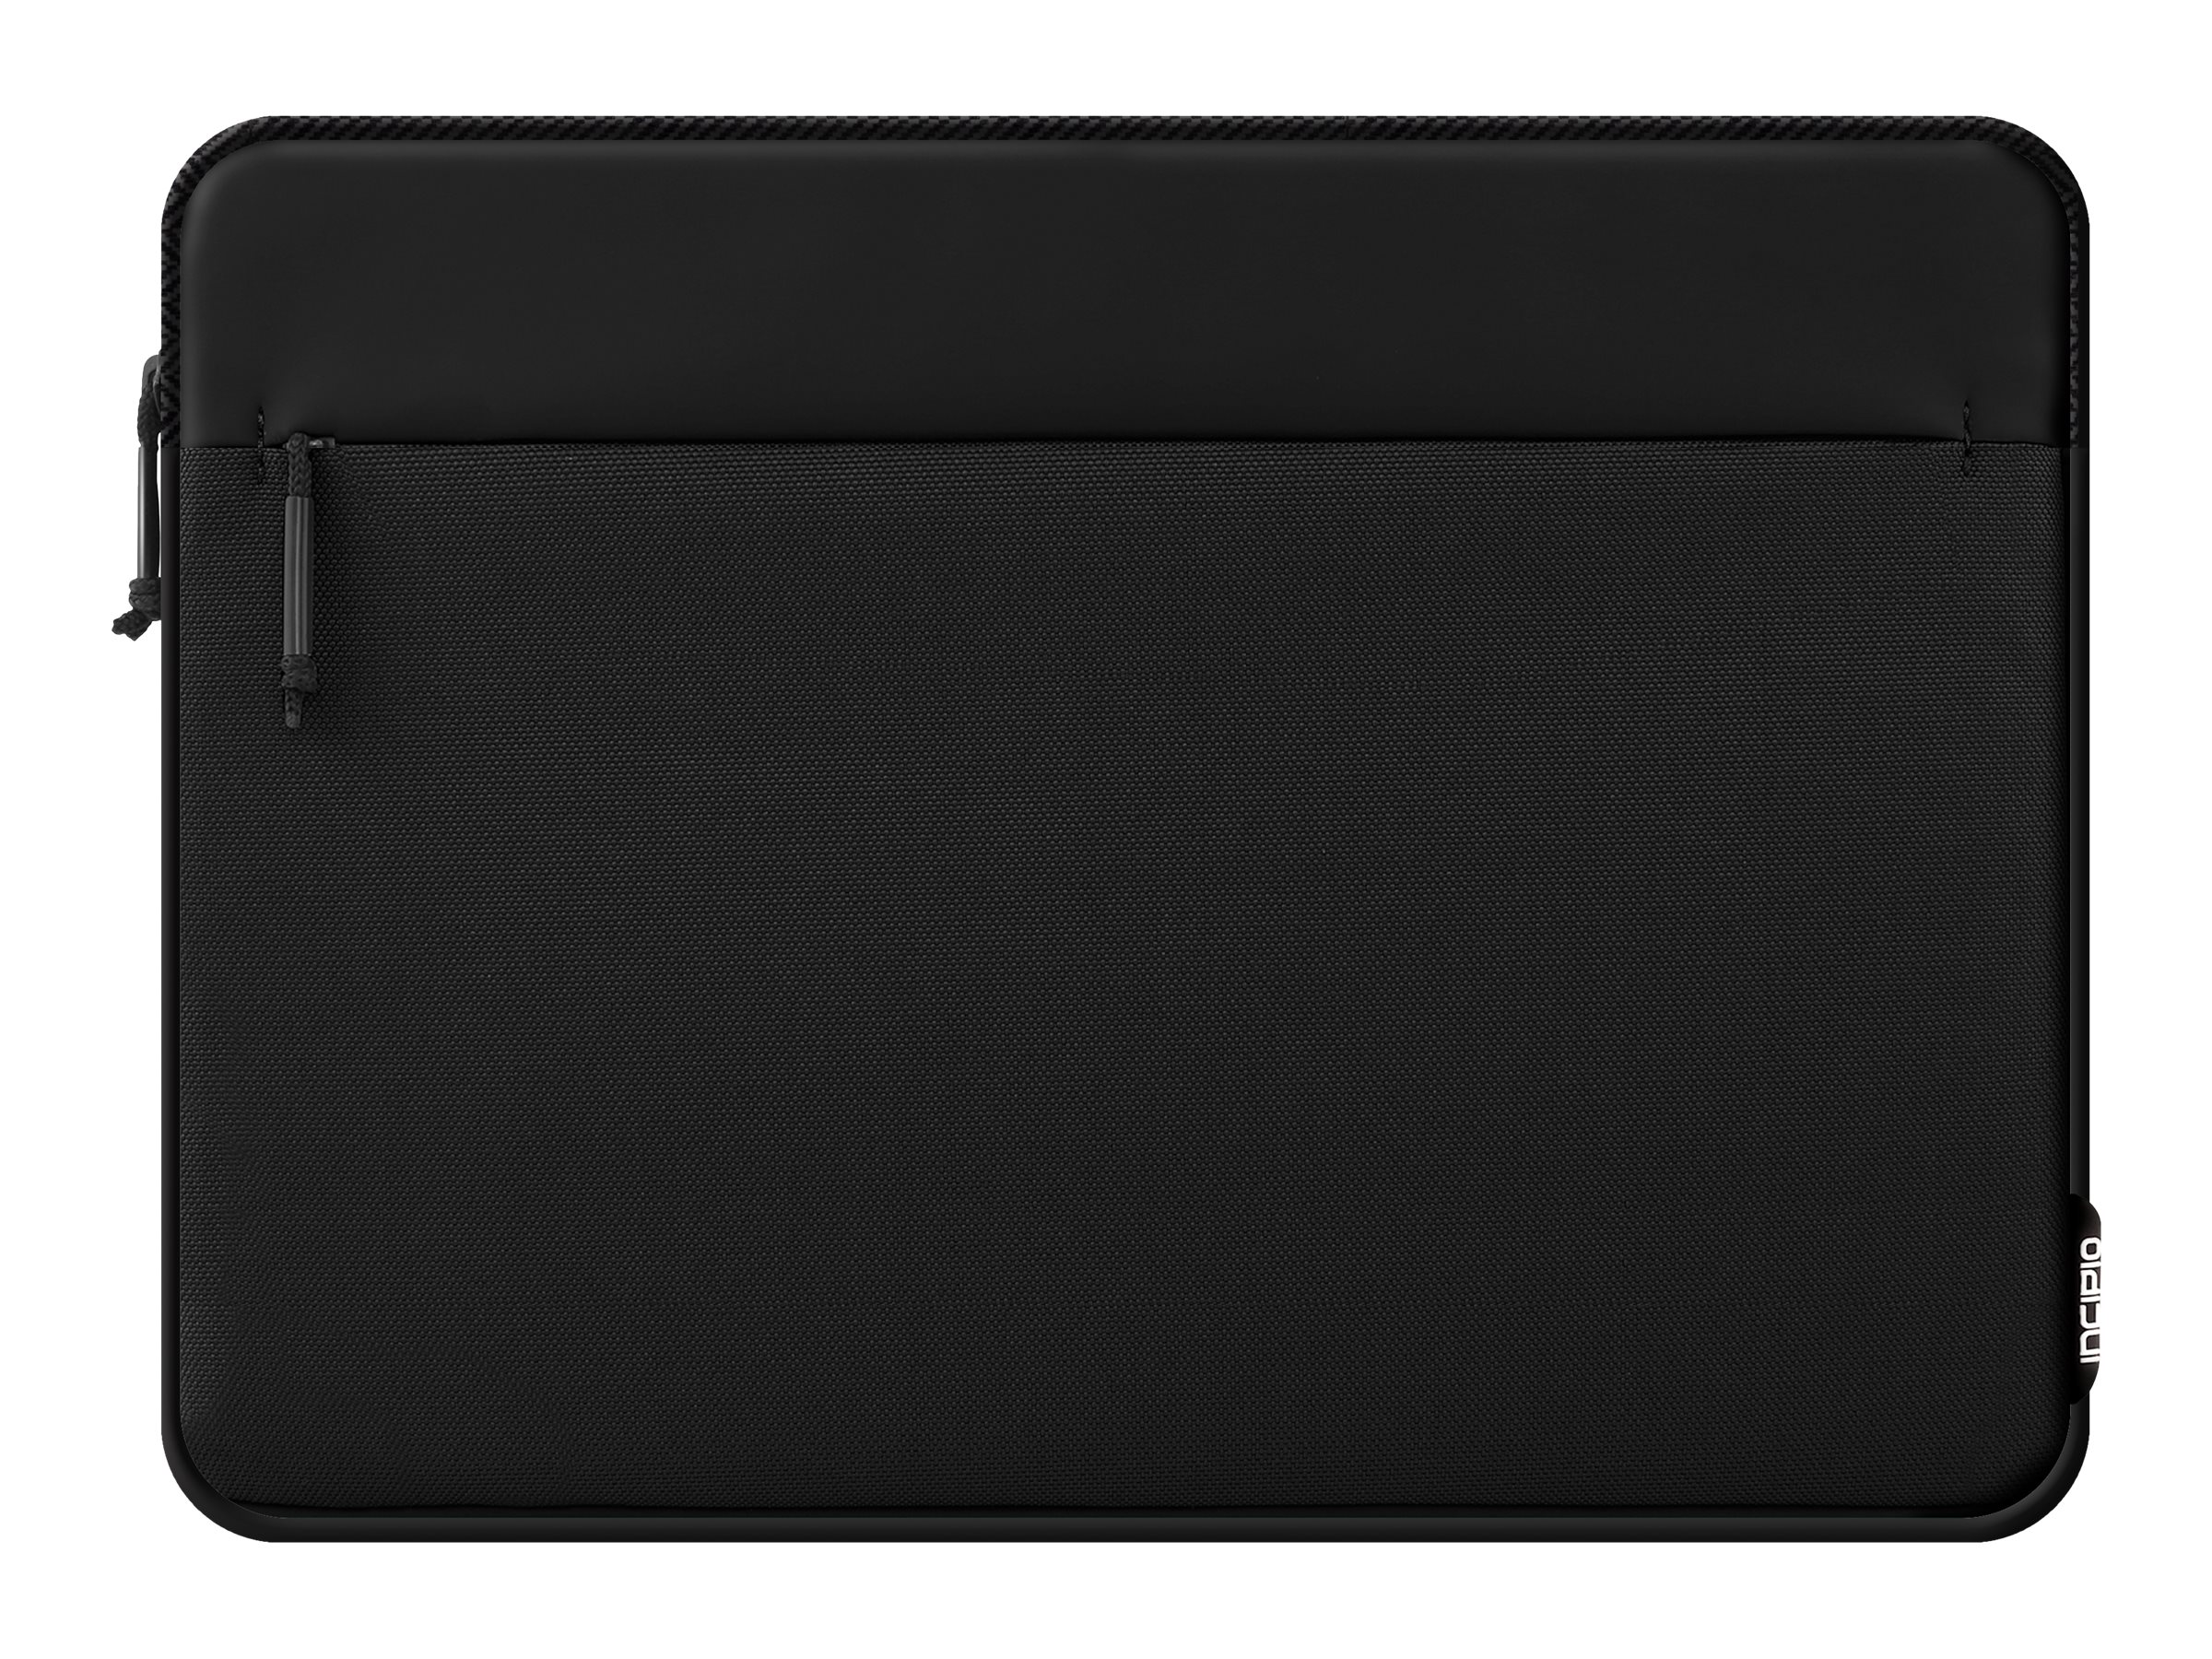 Incipio Truman Sleeve for iPad Pro 9.7, Black